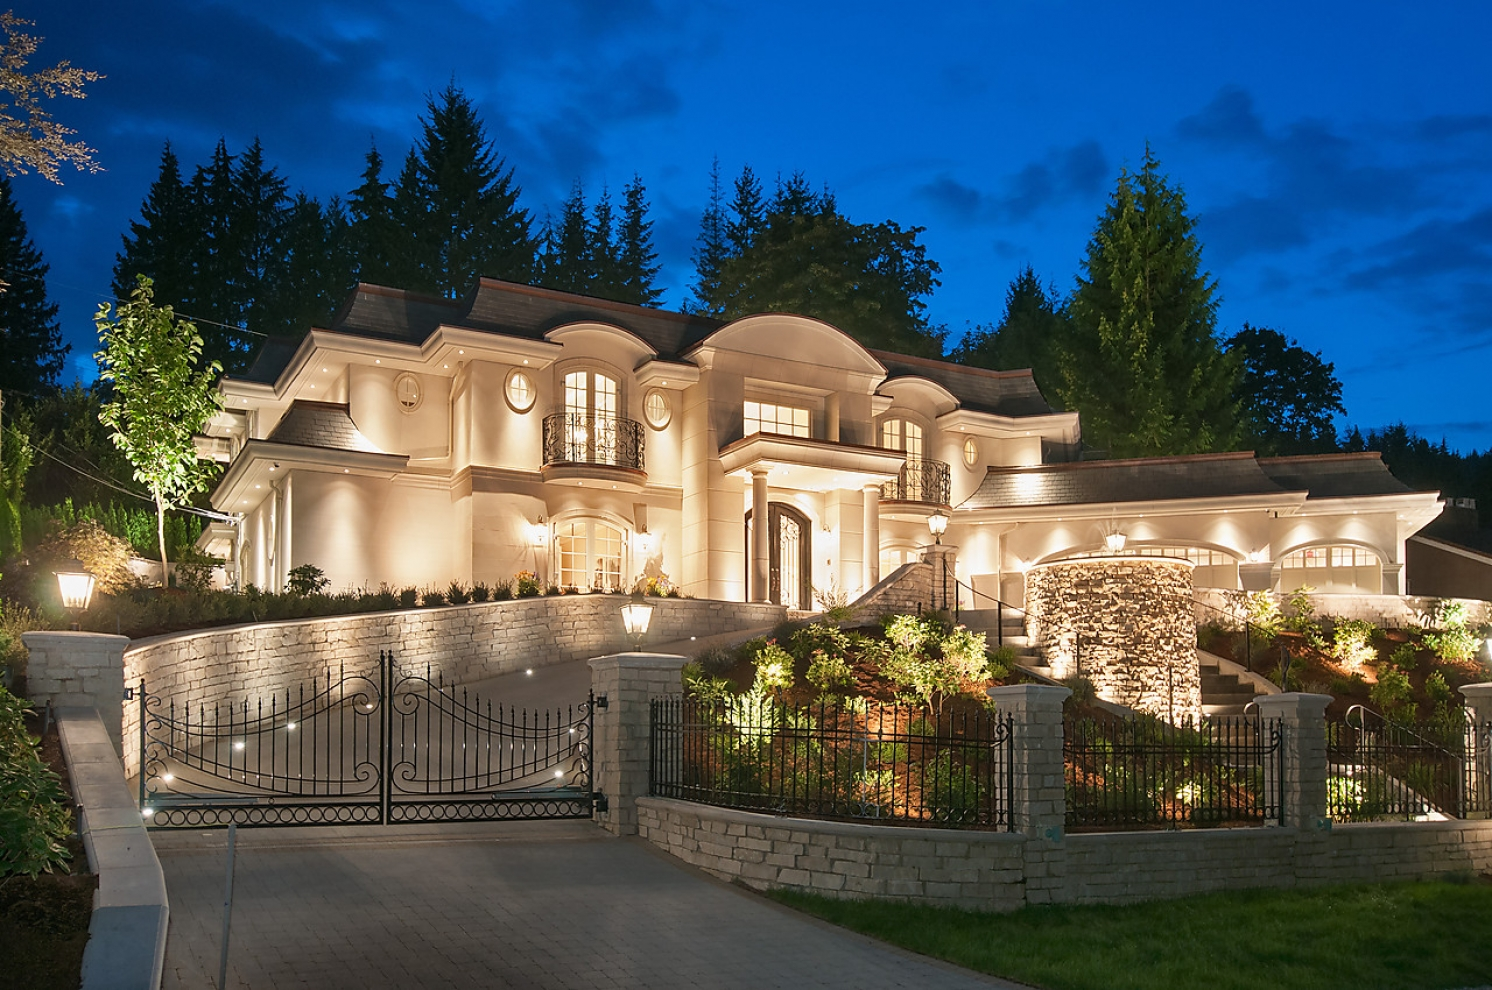 Home Luxury Lifestyle: West Vancouver Homes For Sale